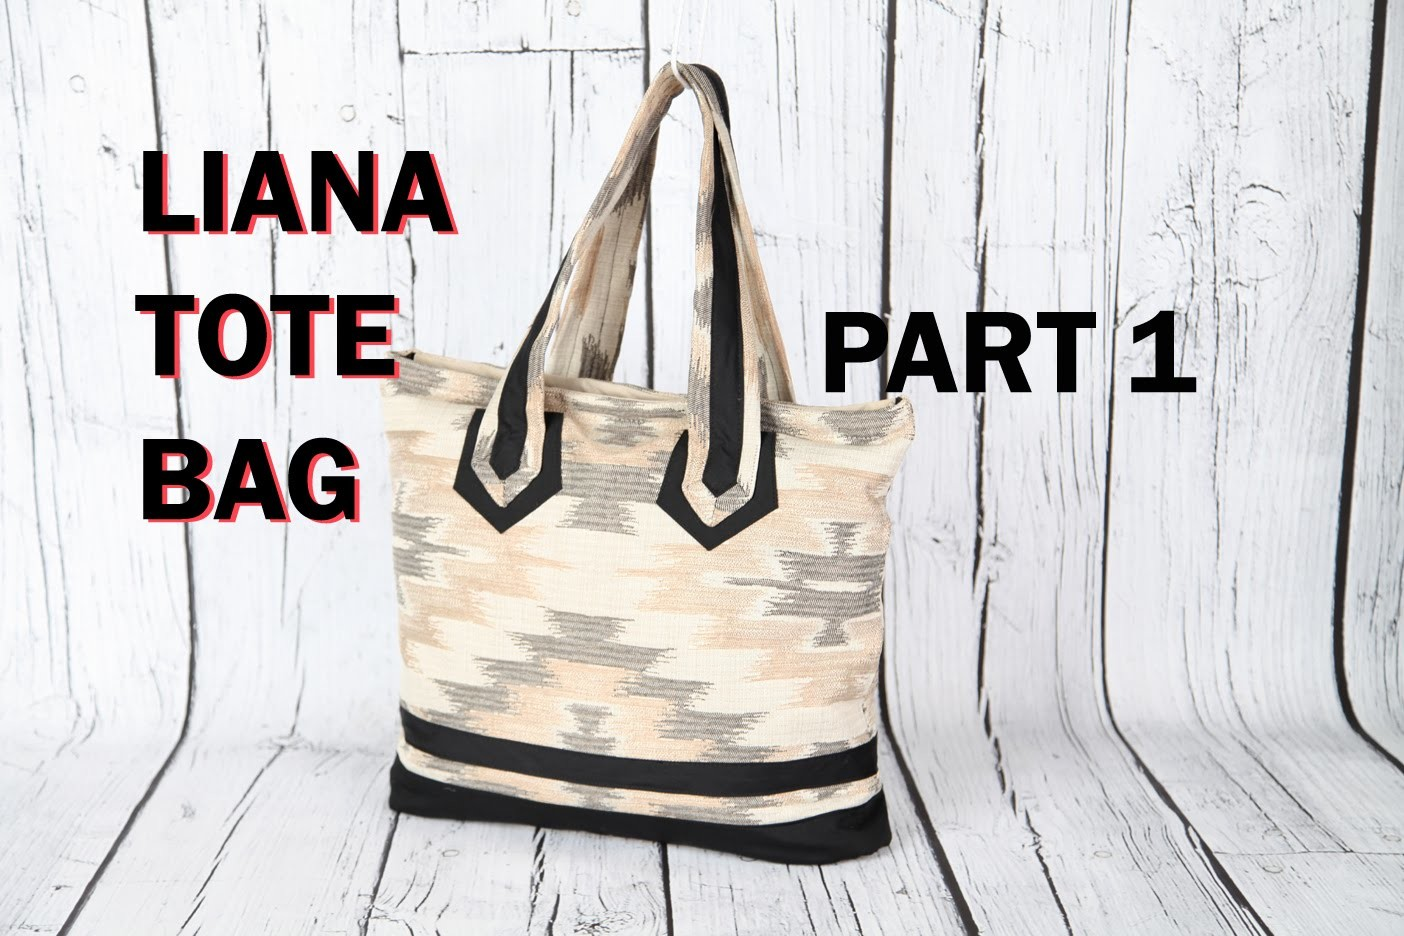 LIANA 1 - HAND BAG TOTEBAG - ZIP POCKETS. DIY Bag Vol 23A